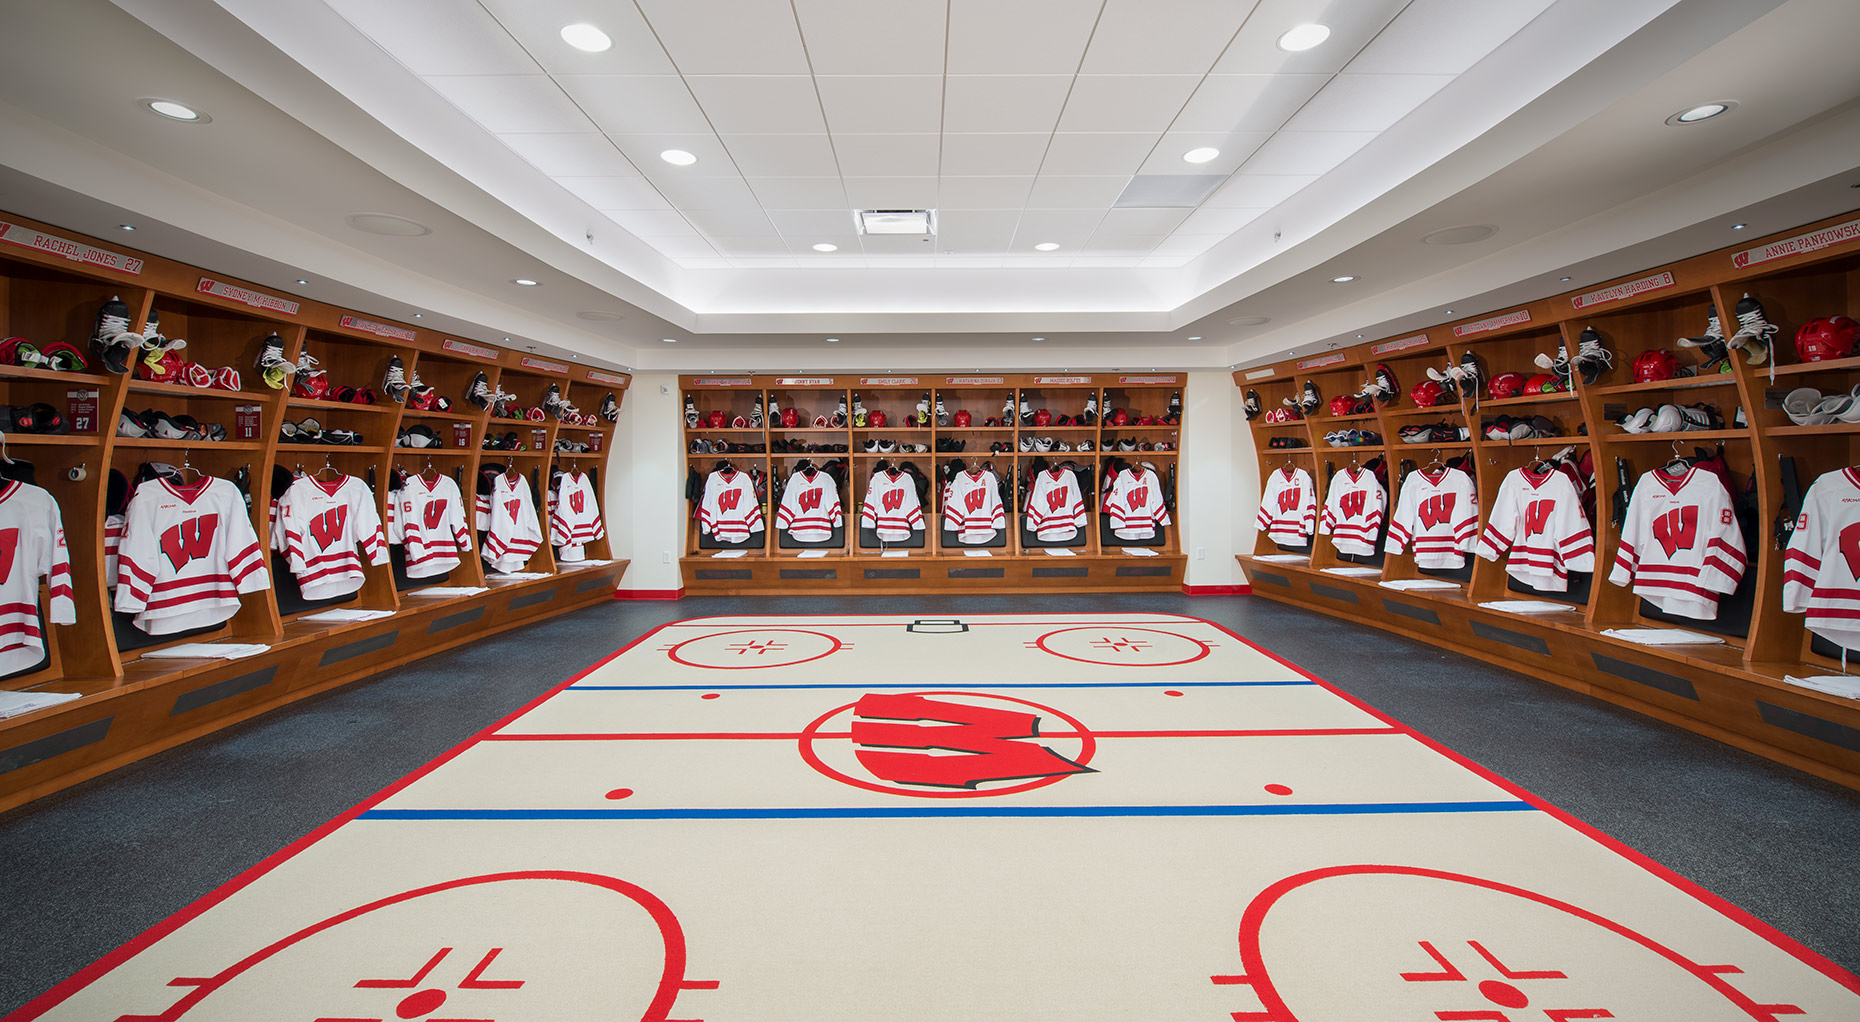 LaBahn ice hockey arena locker room for Wisconsin Badgers at University of Wisconsin-Madison